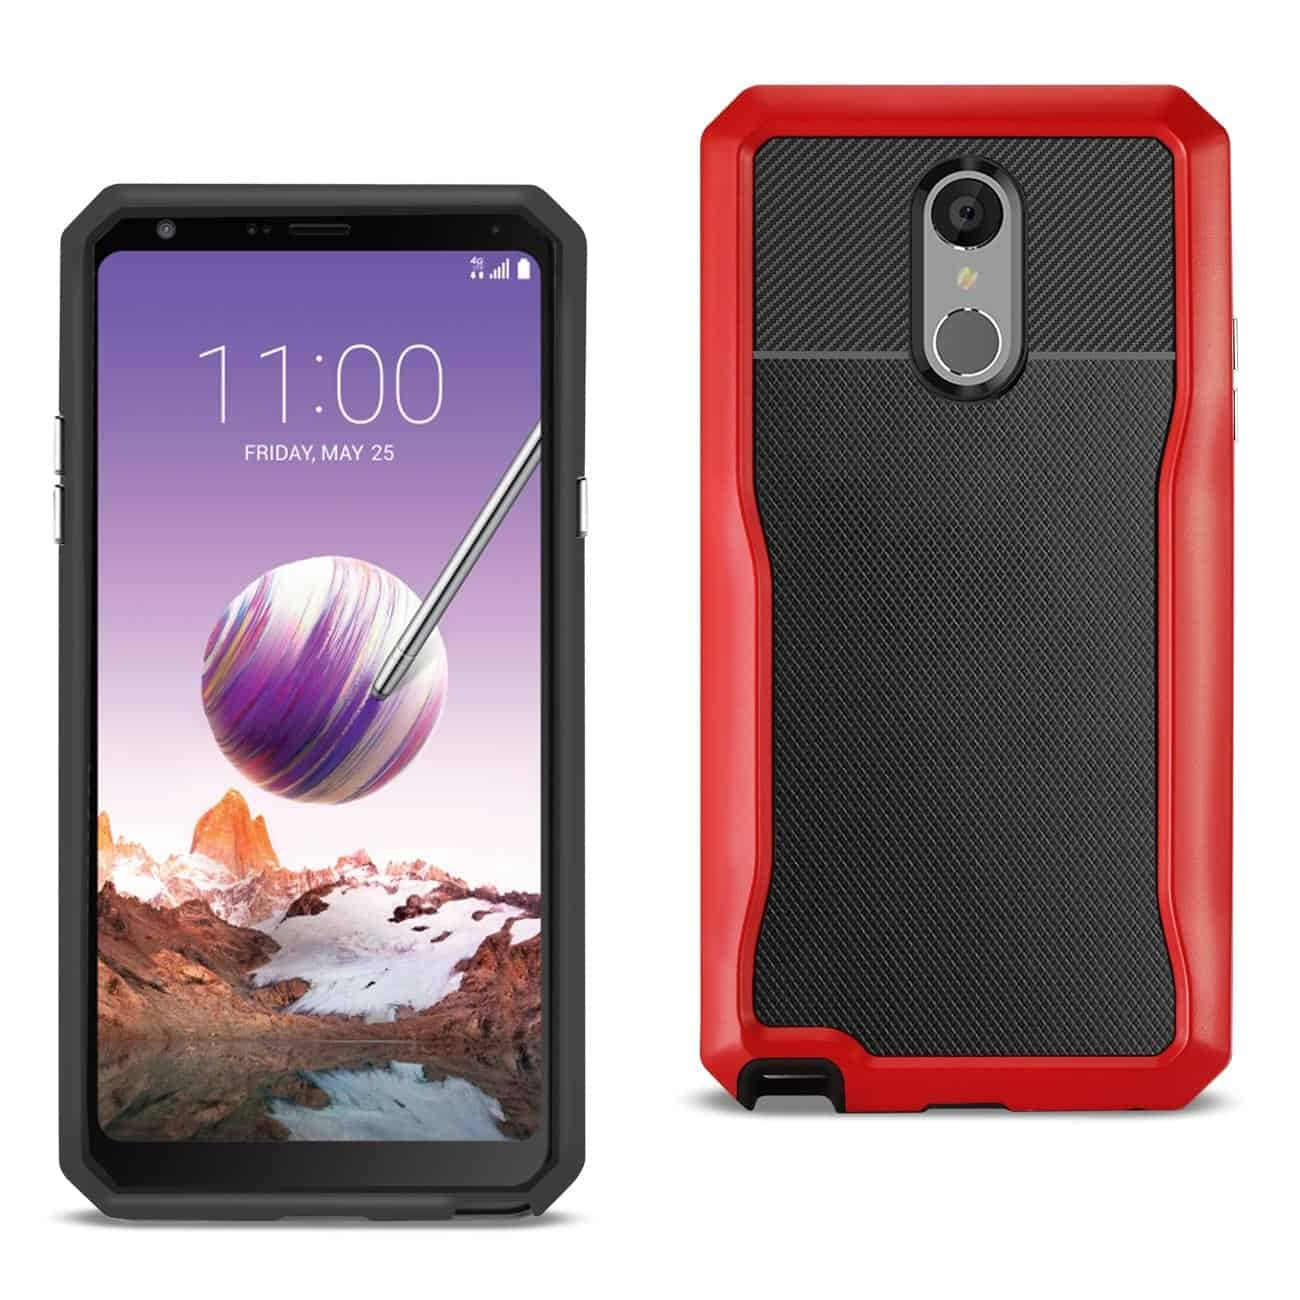 LG STYLO 4 Full Coverage Shockproof Case In Red